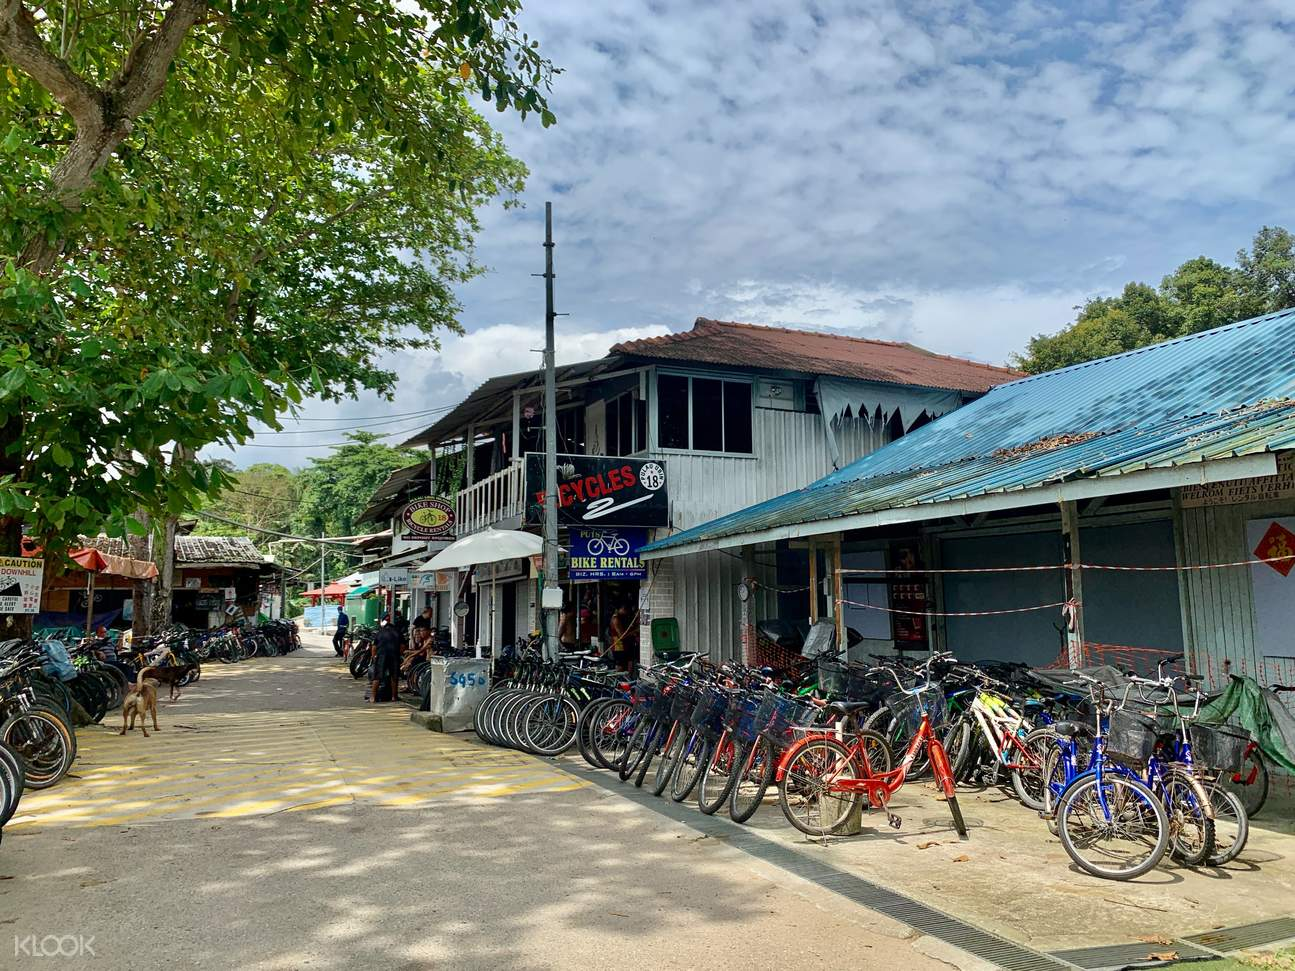 You may also have a bicycle ride in Pulau Ubin village